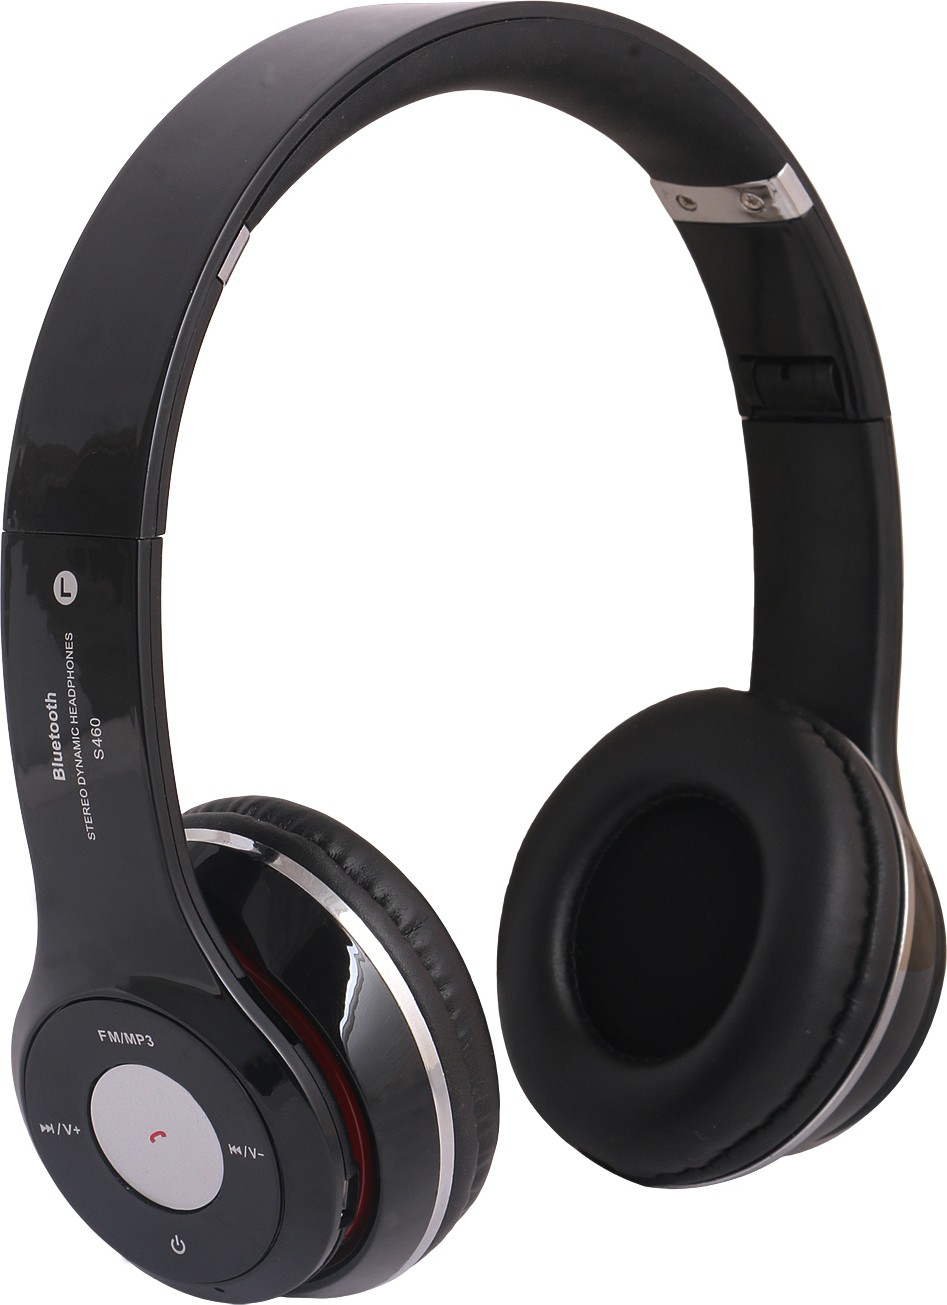 REJUVENATE S460 WIRED & WIRELESS WITH TF CARD SUPPORT Wired & Wireless Bluetooth Gaming Headset With Mic(Black)